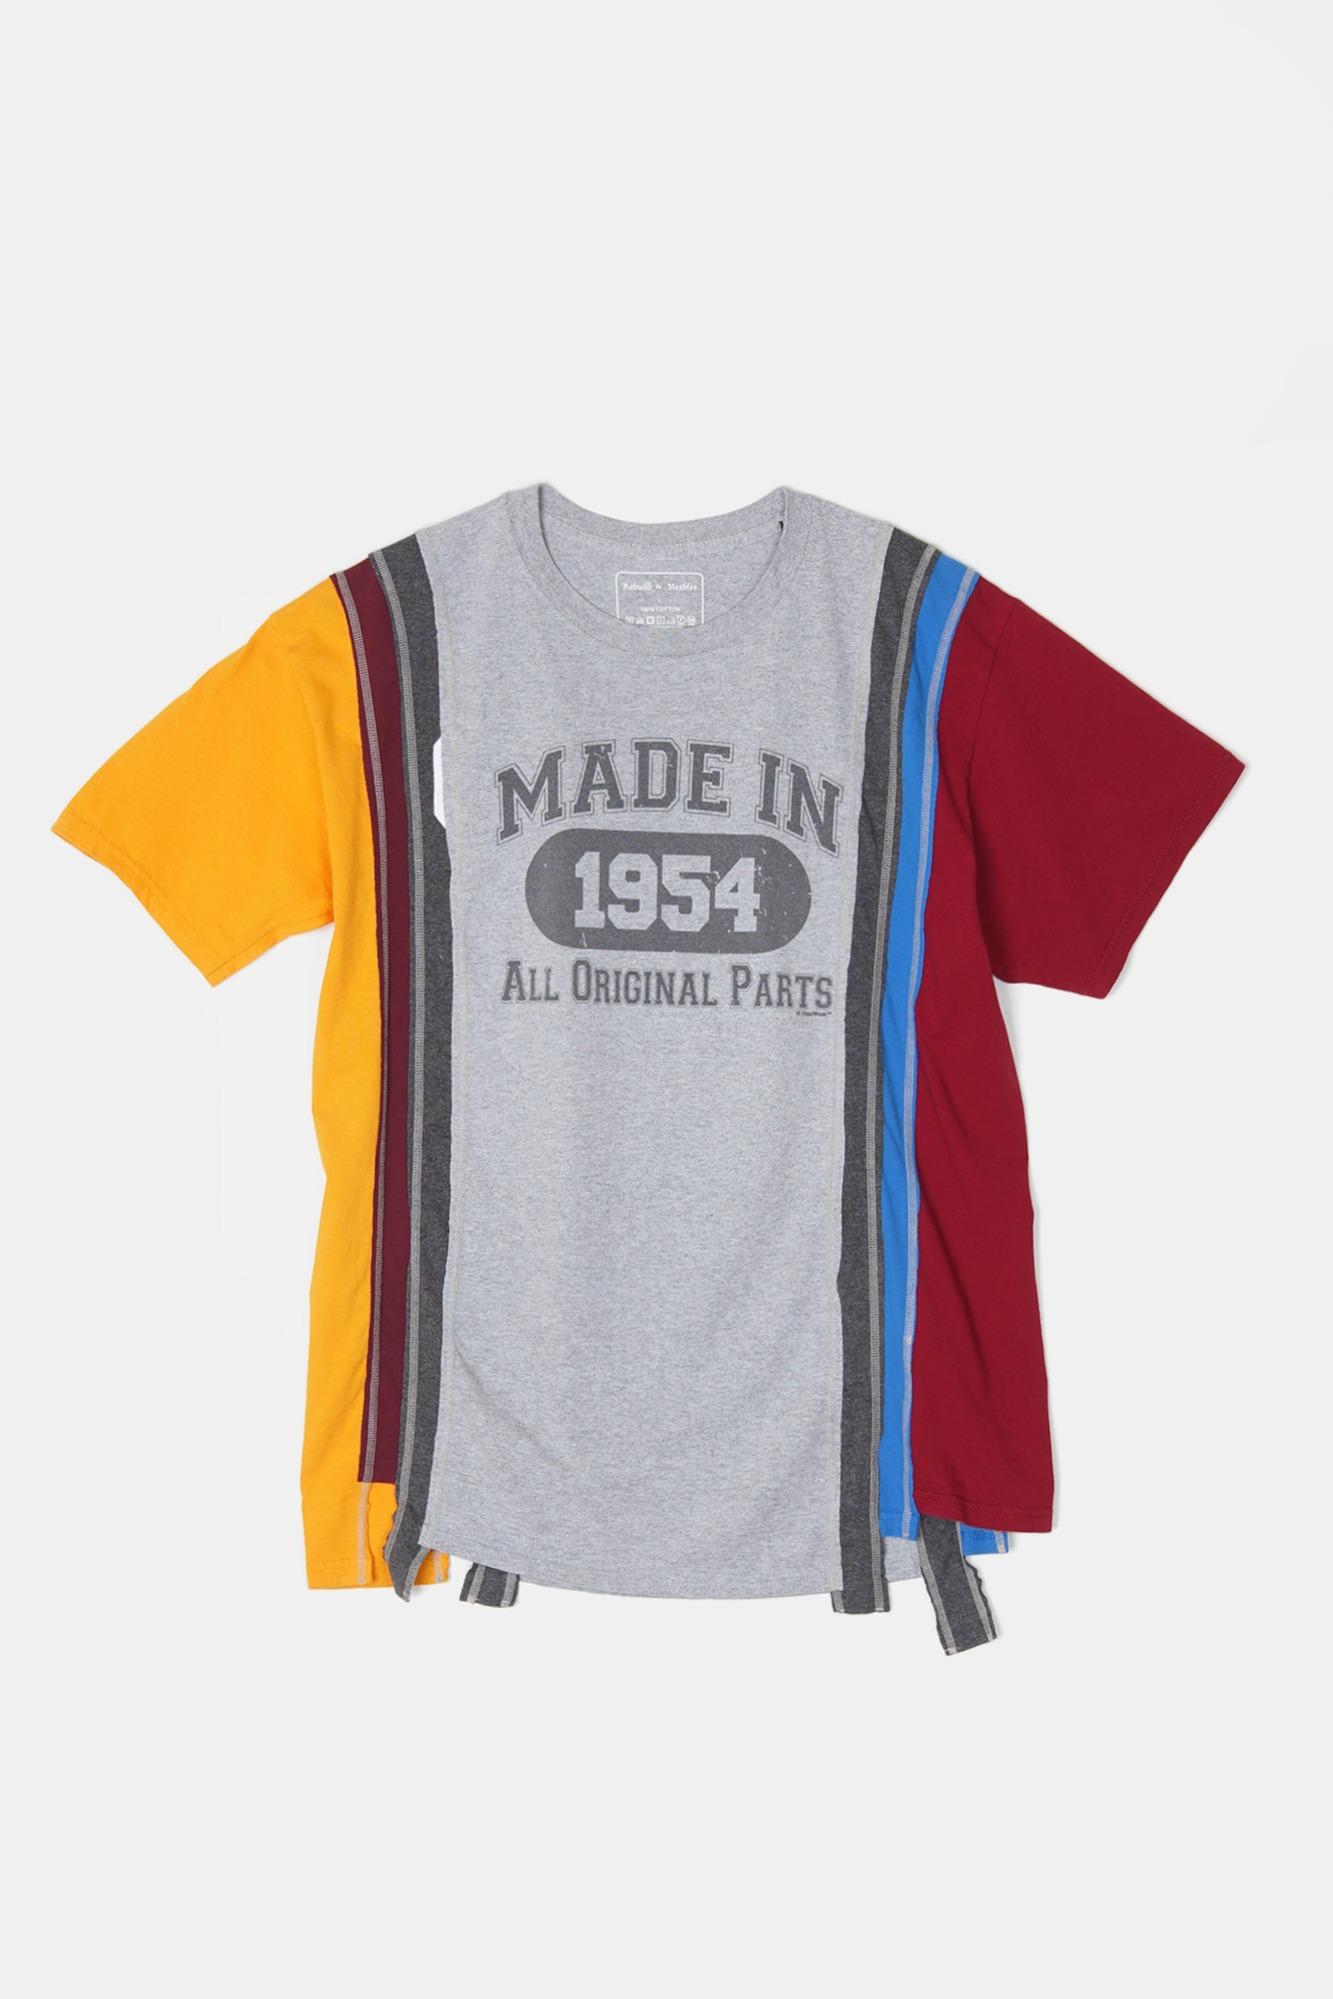 REBUILD BY NEEDLES 7 Cuts S/S College Tee 1